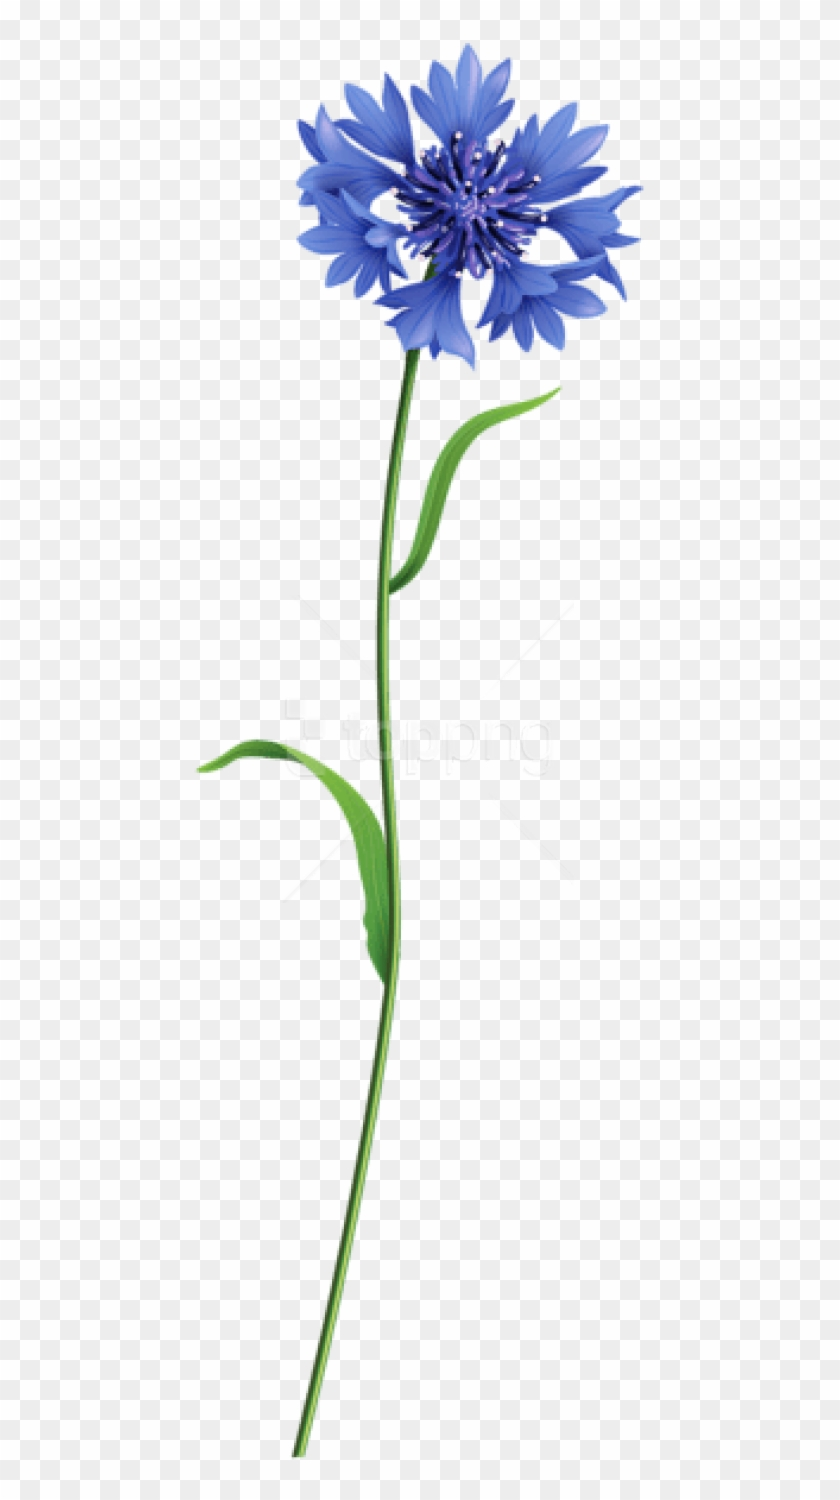 Free Png Download Blue Field Flower Png Images Background.